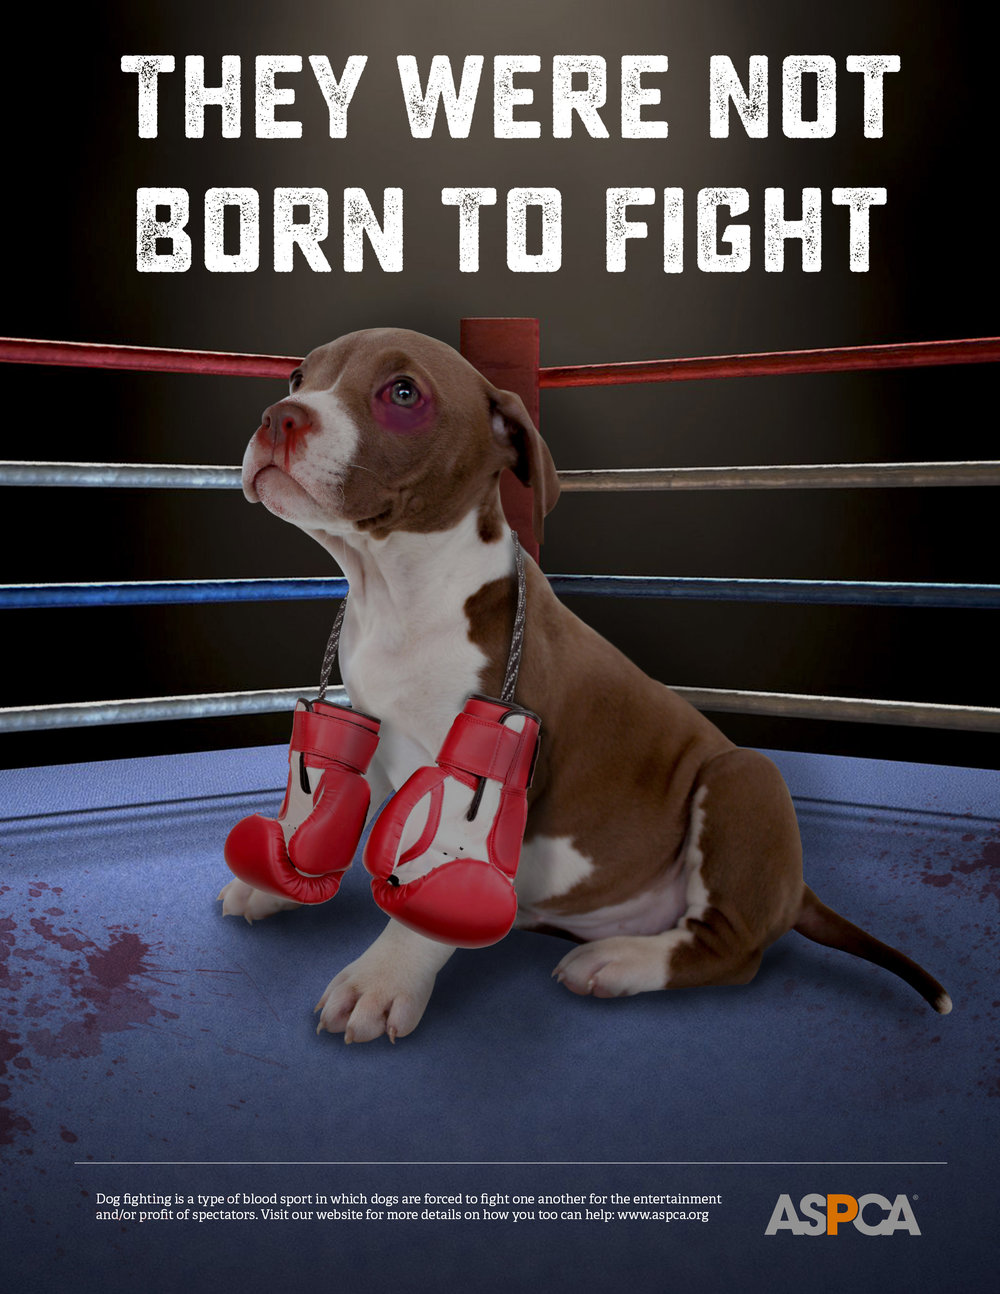 School Project ASPCA Poster against Dog Fighting